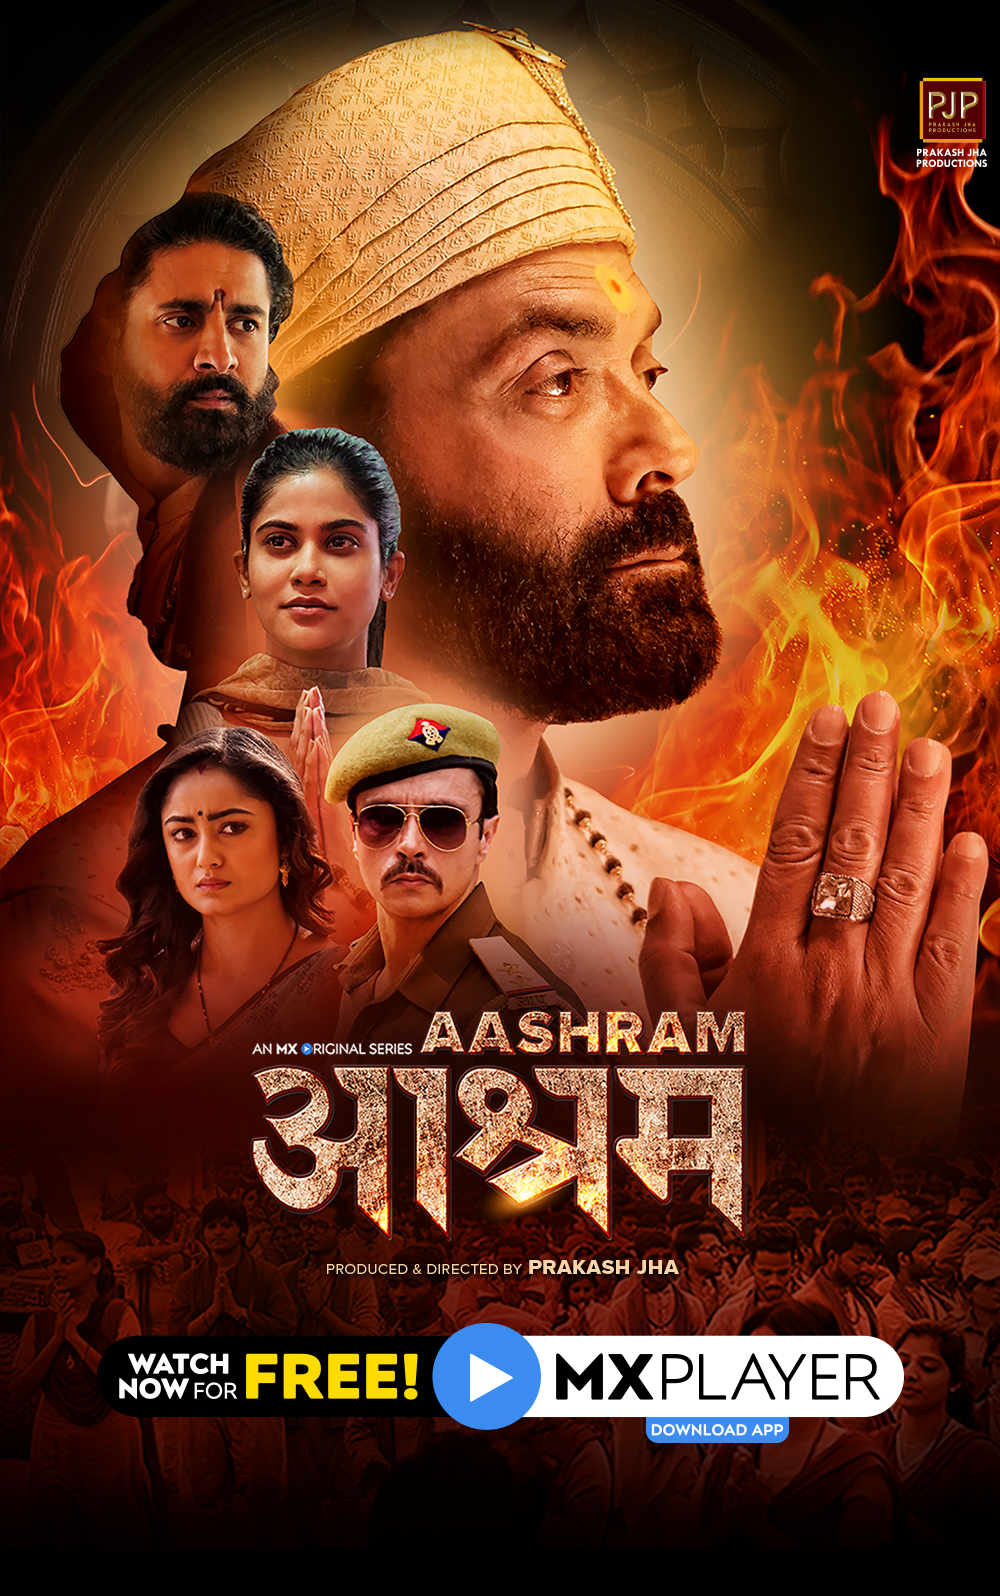 Aashram Chapter 2 The Dark Side 2020 S02 Hindi MX Player Original Web Series Official Trailer 1080p HDRip 60MB Download